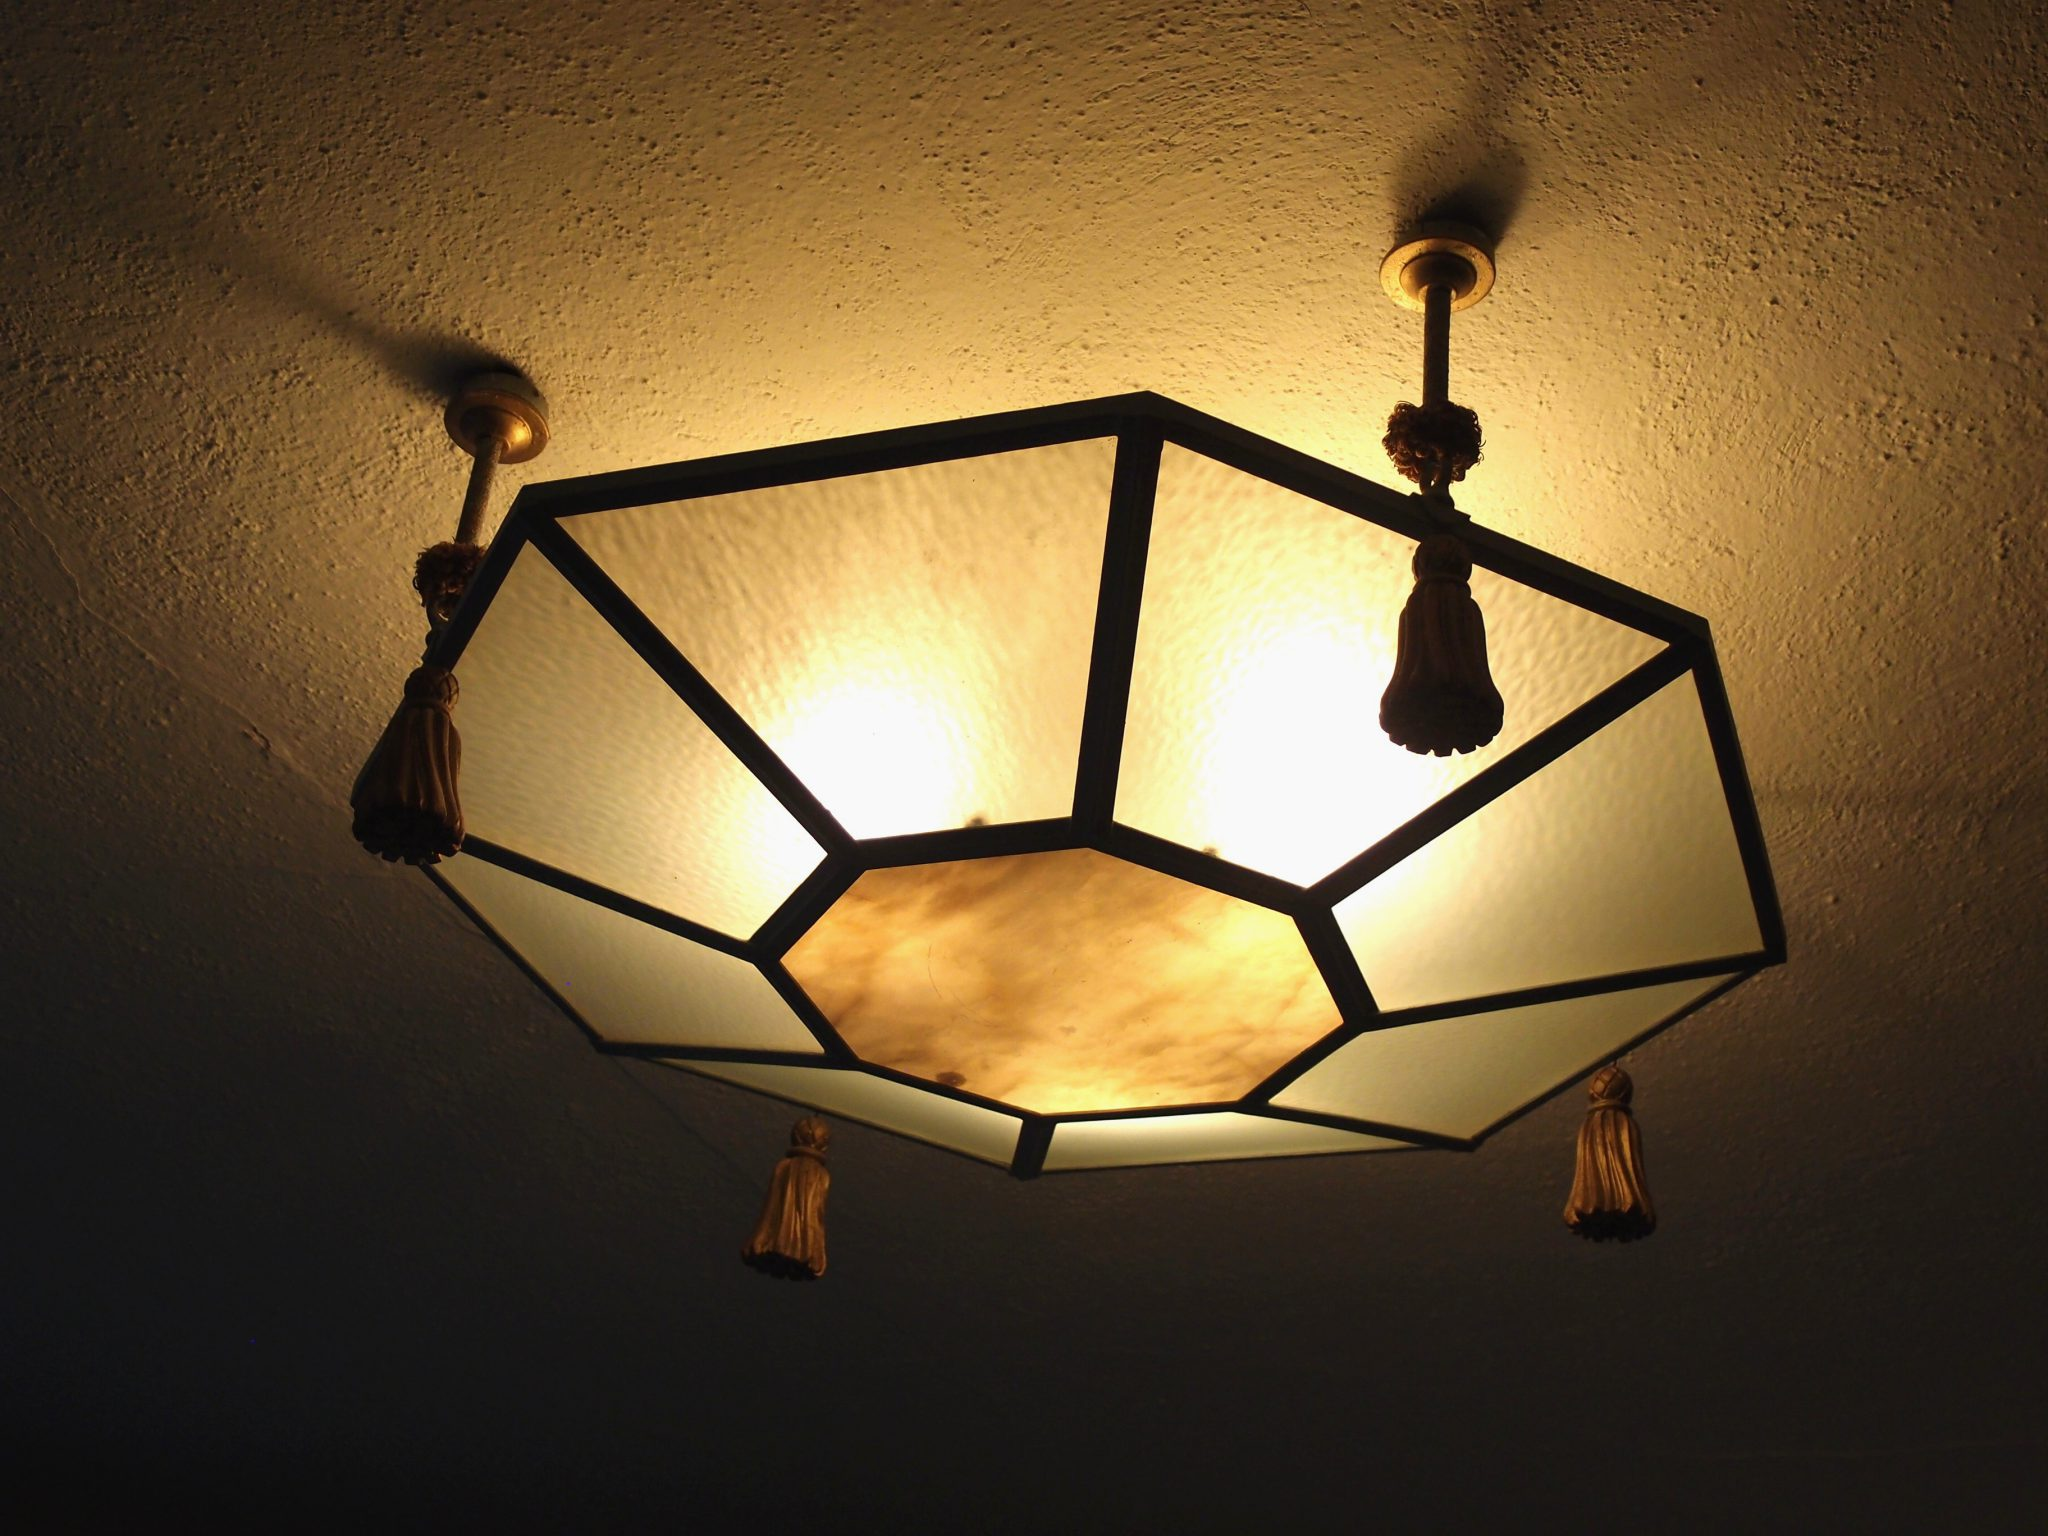 Turret Guest Bedroom's original ceiling light fixture